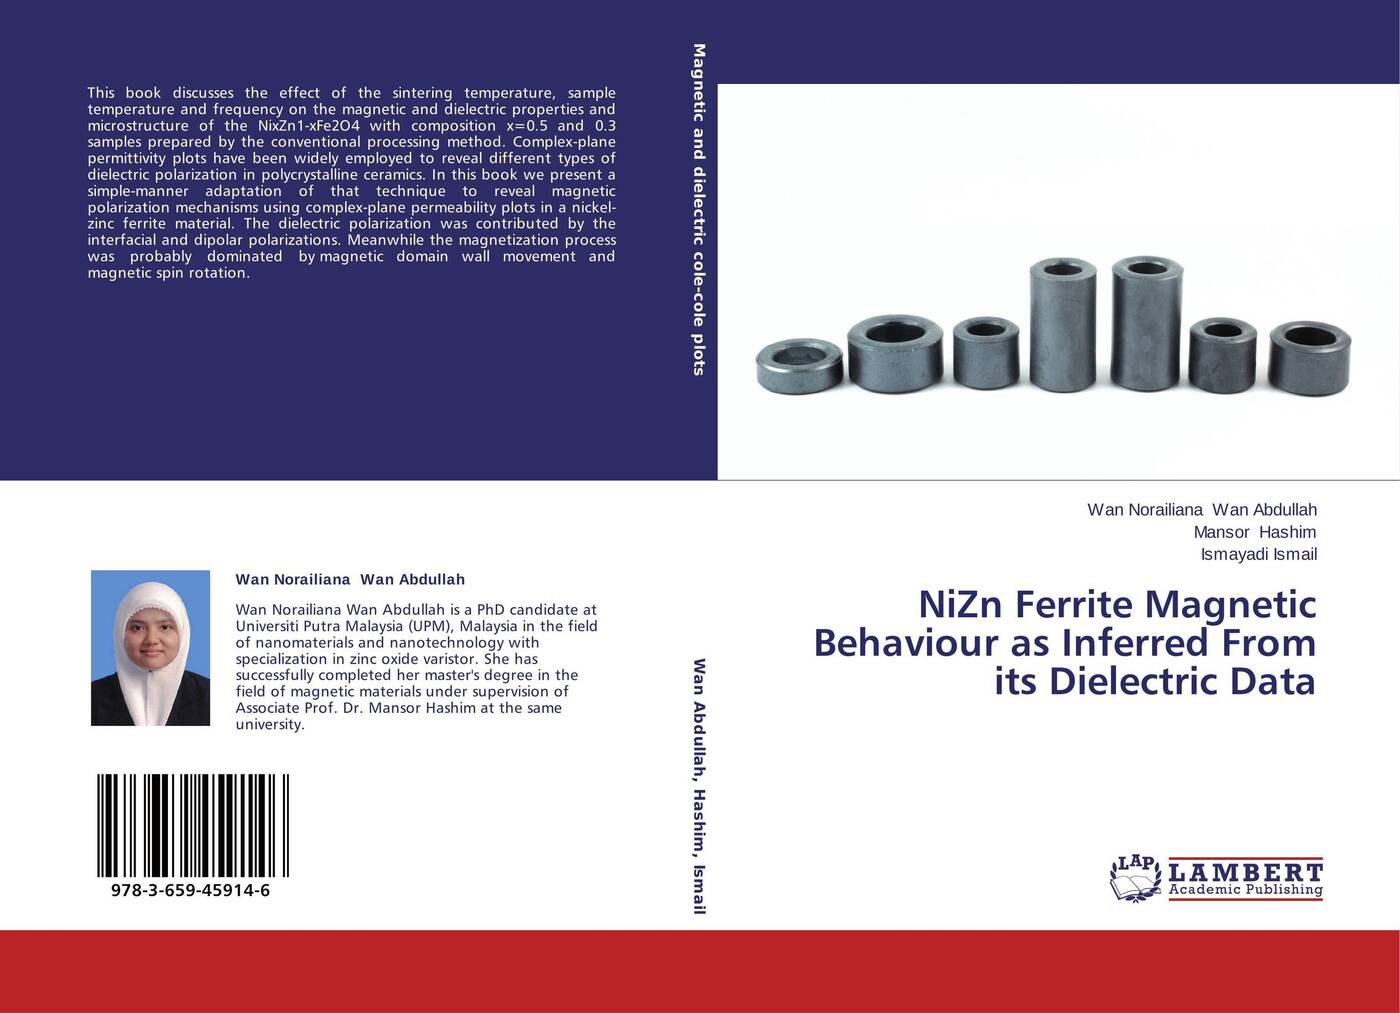 Wan Norailiana Wan Abdullah,Mansor Hashim and Ismayadi Ismail NiZn Ferrite Magnetic Behaviour as Inferred From its Dielectric Data magnetic and dielectric properties of materials